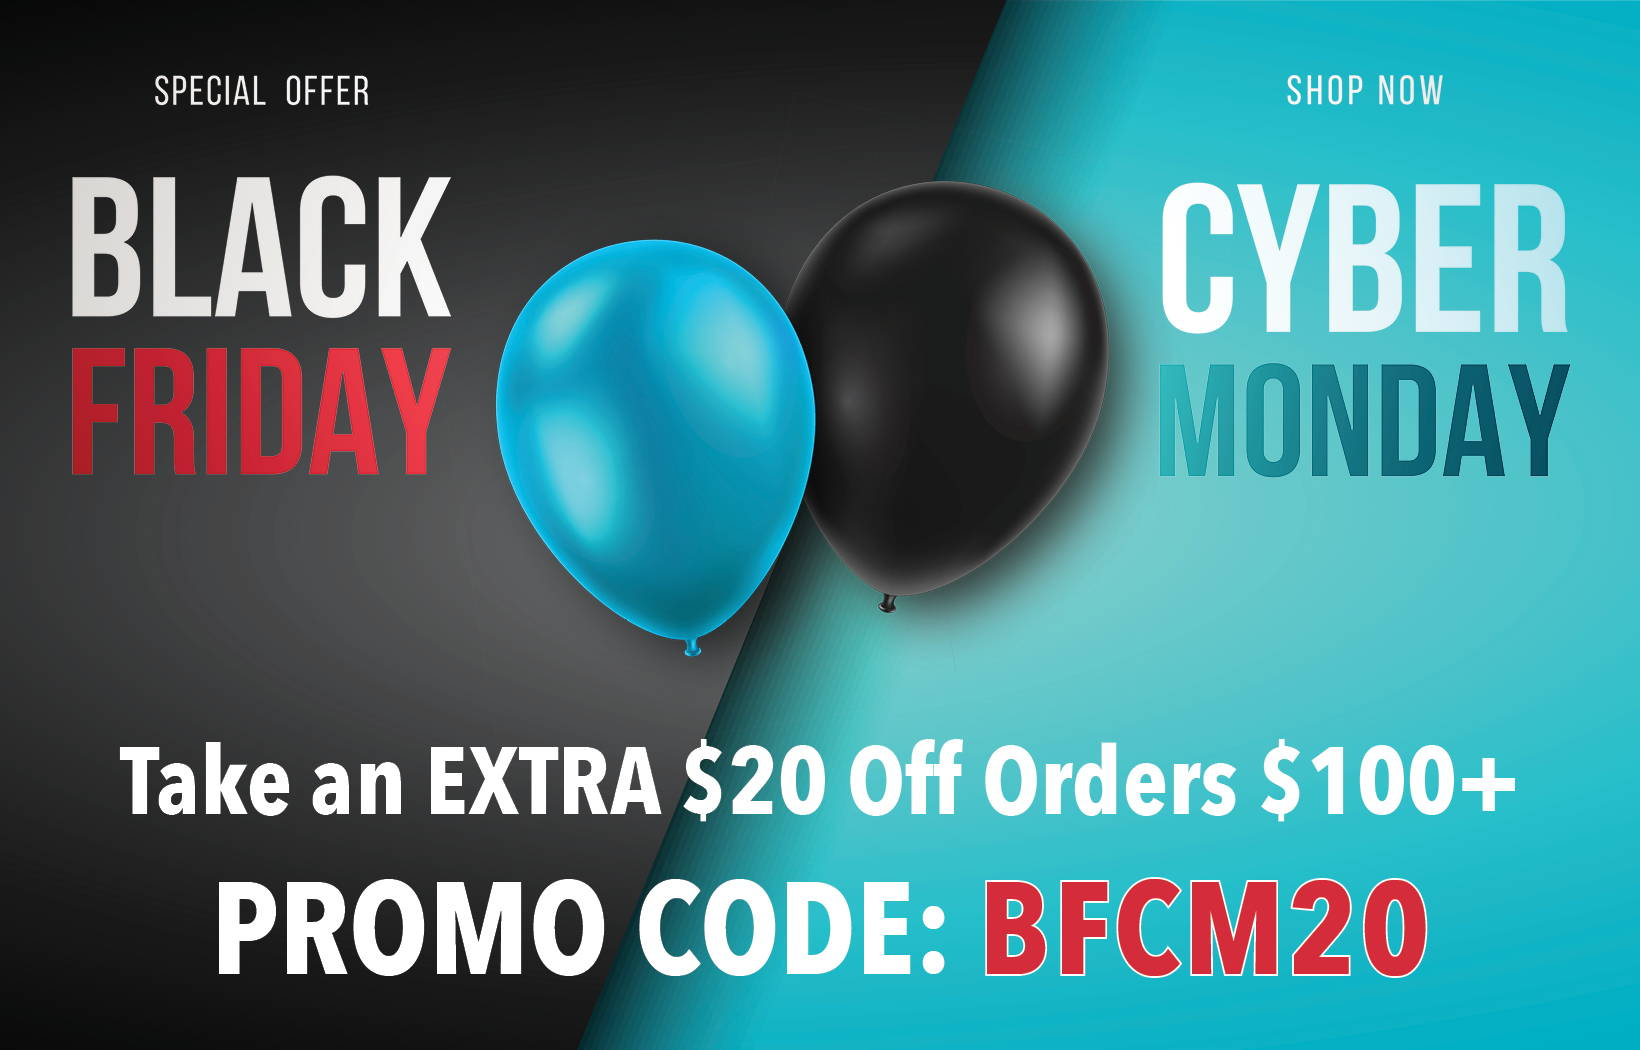 Black Friday Cyber Monday Take an EXTRA $20 off orders $100+ with promo code BFCM20